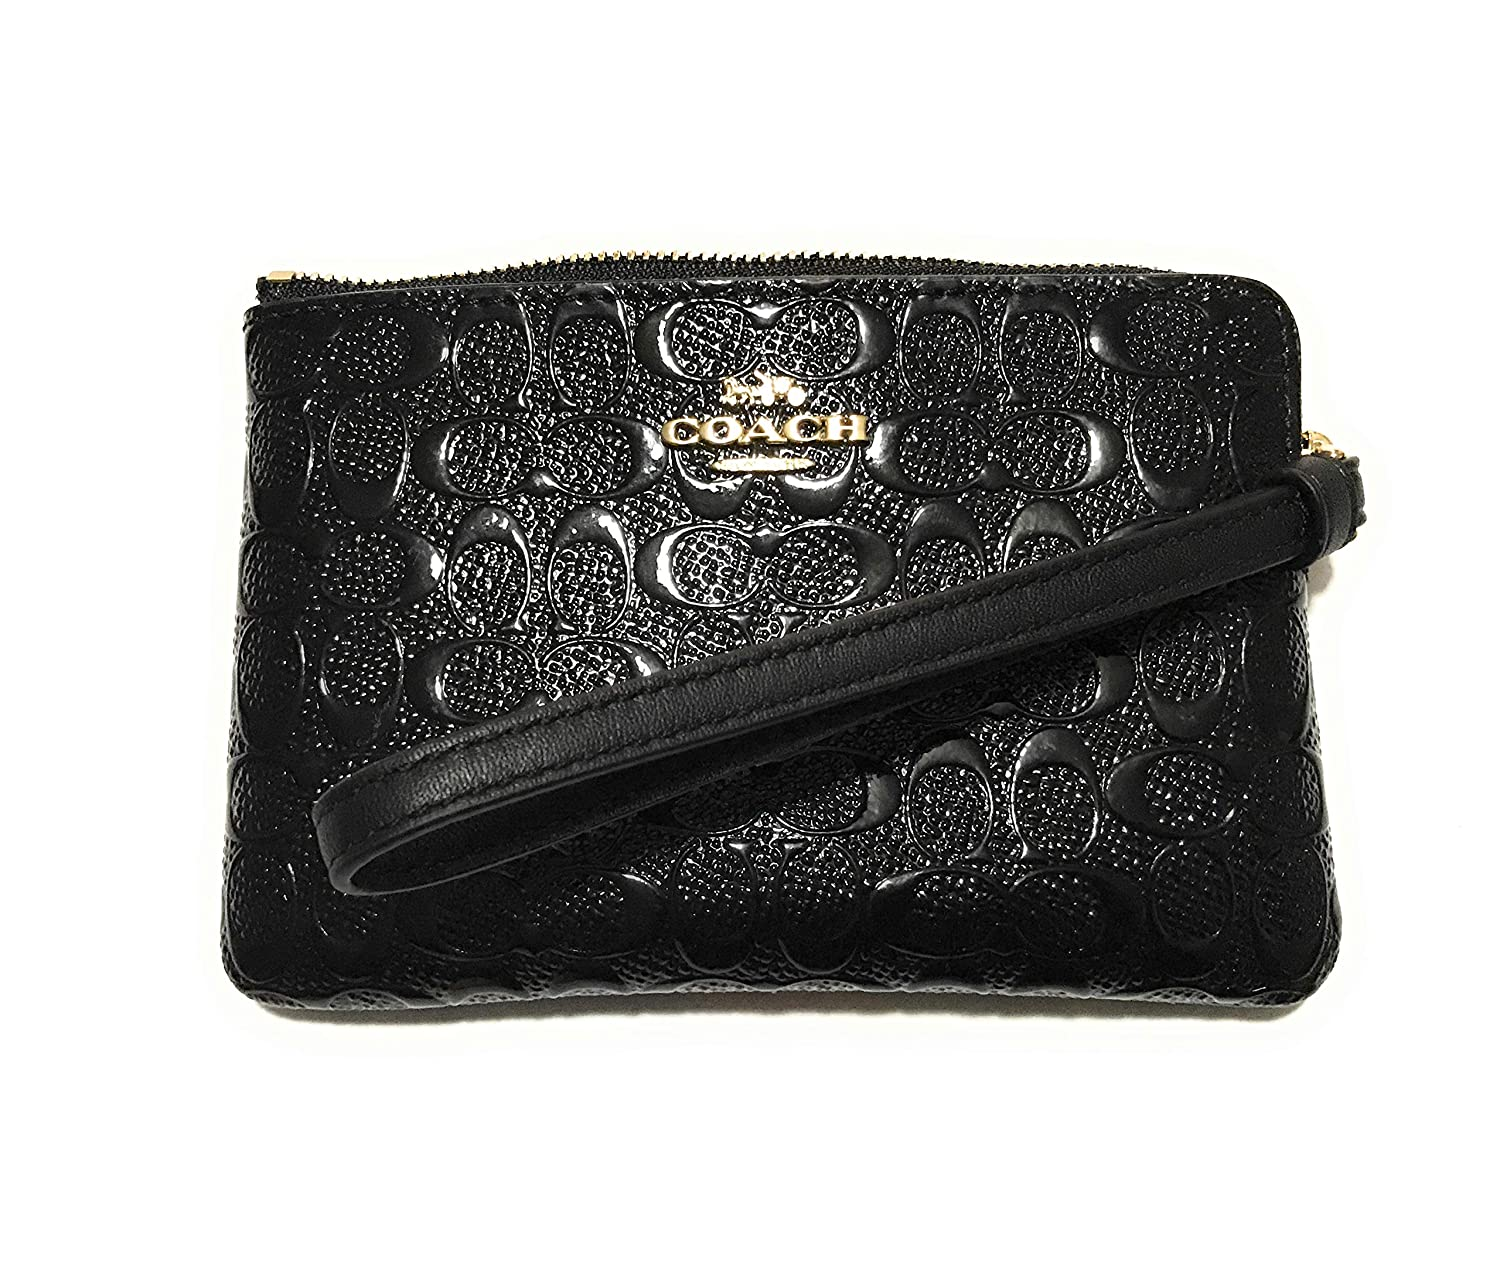 Coach Black Signature Debossed Patent Leather Corner Zip Wristlet F58034